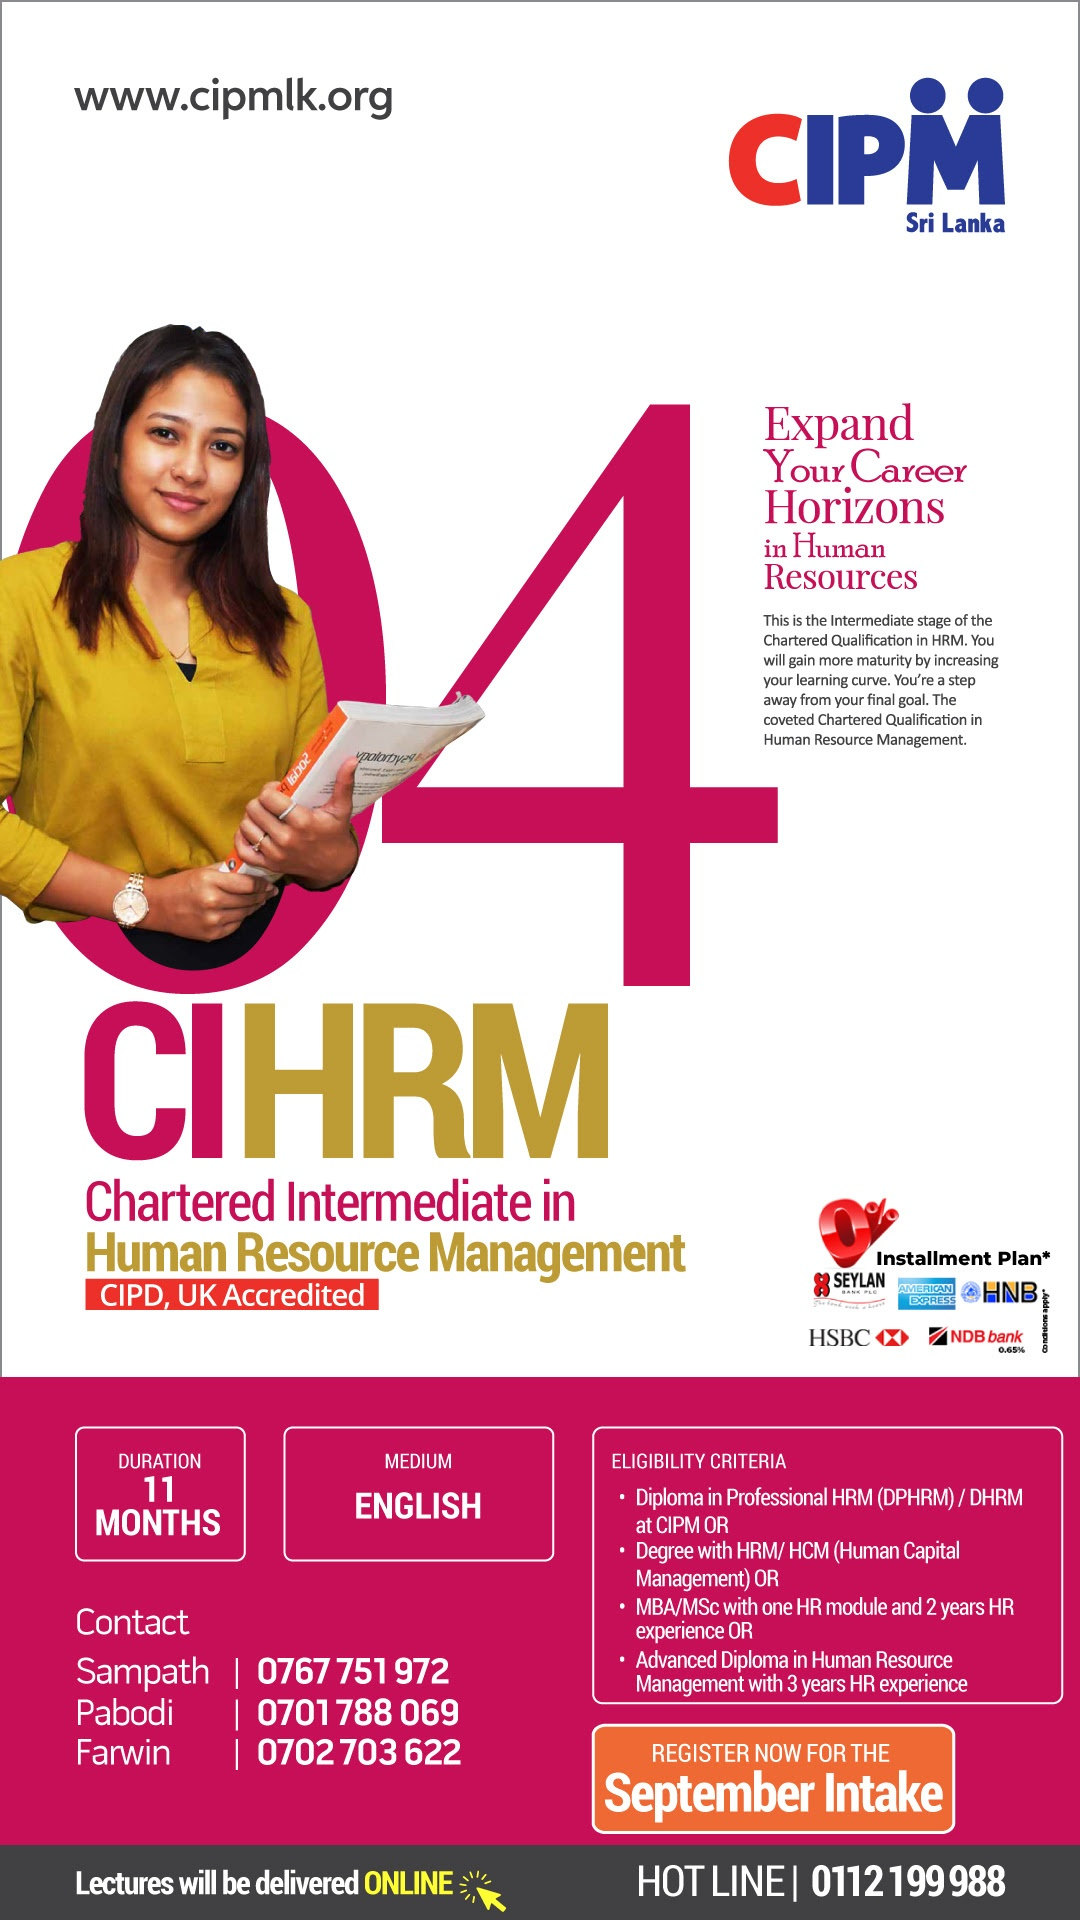 Expand Your Career Horizons in Human Resources